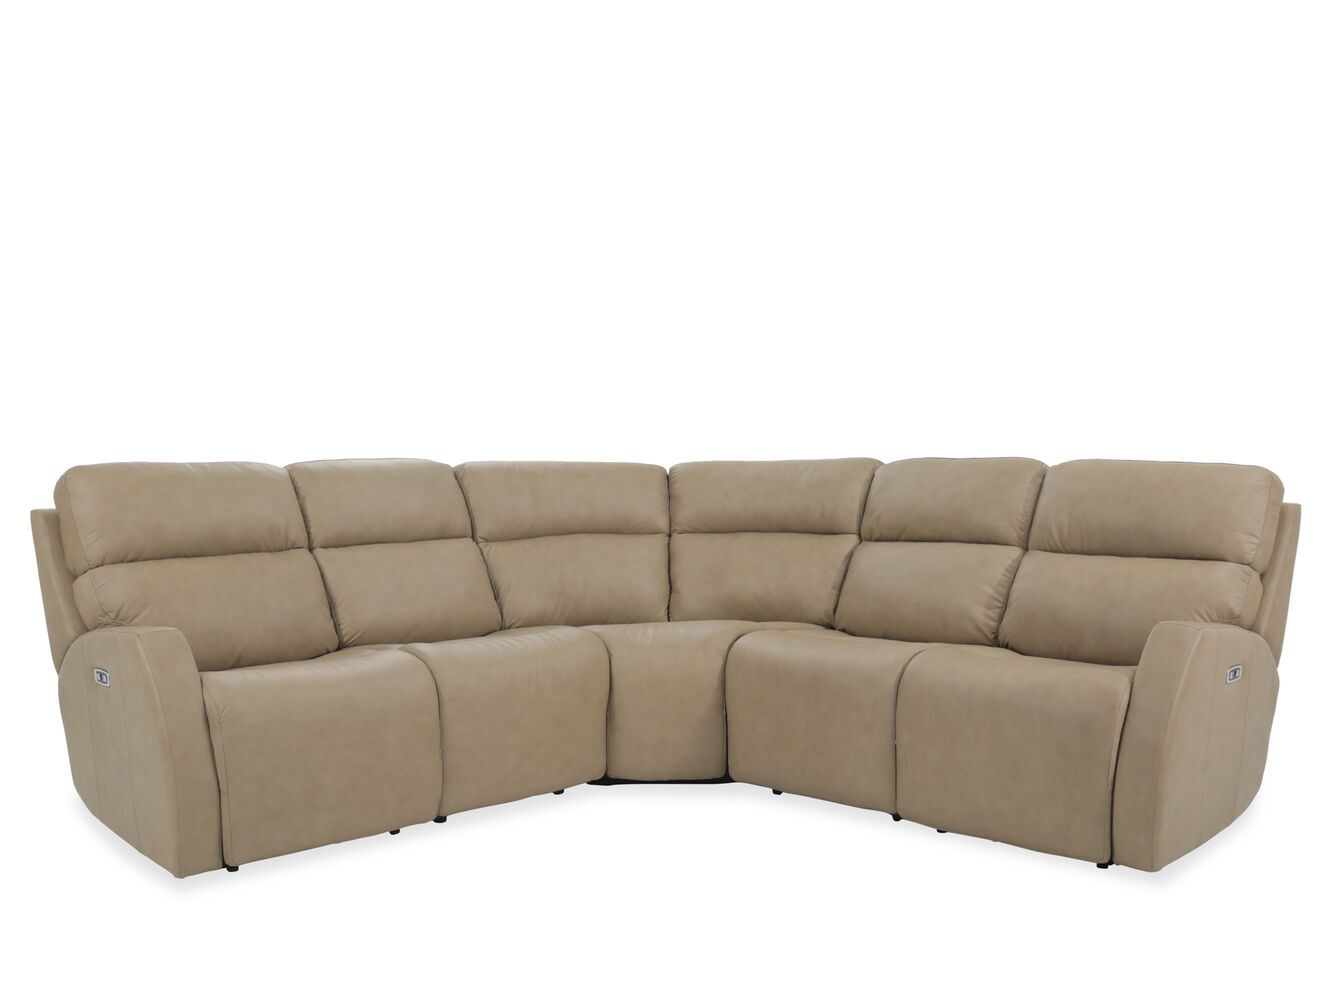 Three piece leather 107quot power reclining sectional in for 3 piece brown leather sectional sofa